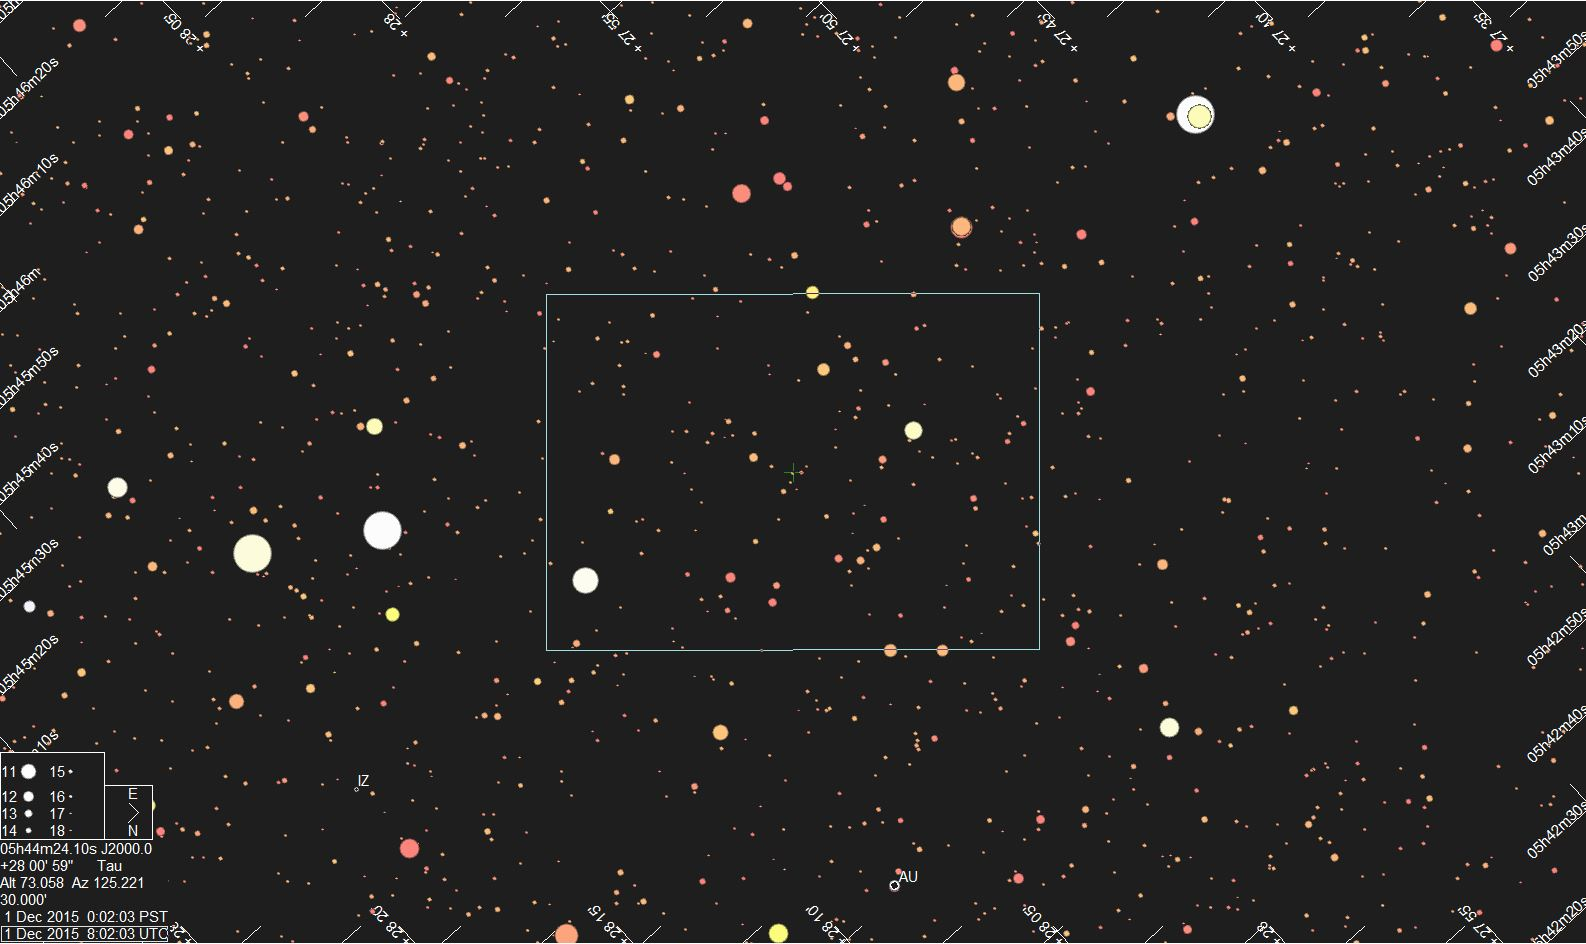 Star chart for 13WV107 provided by Jerry Bardecker